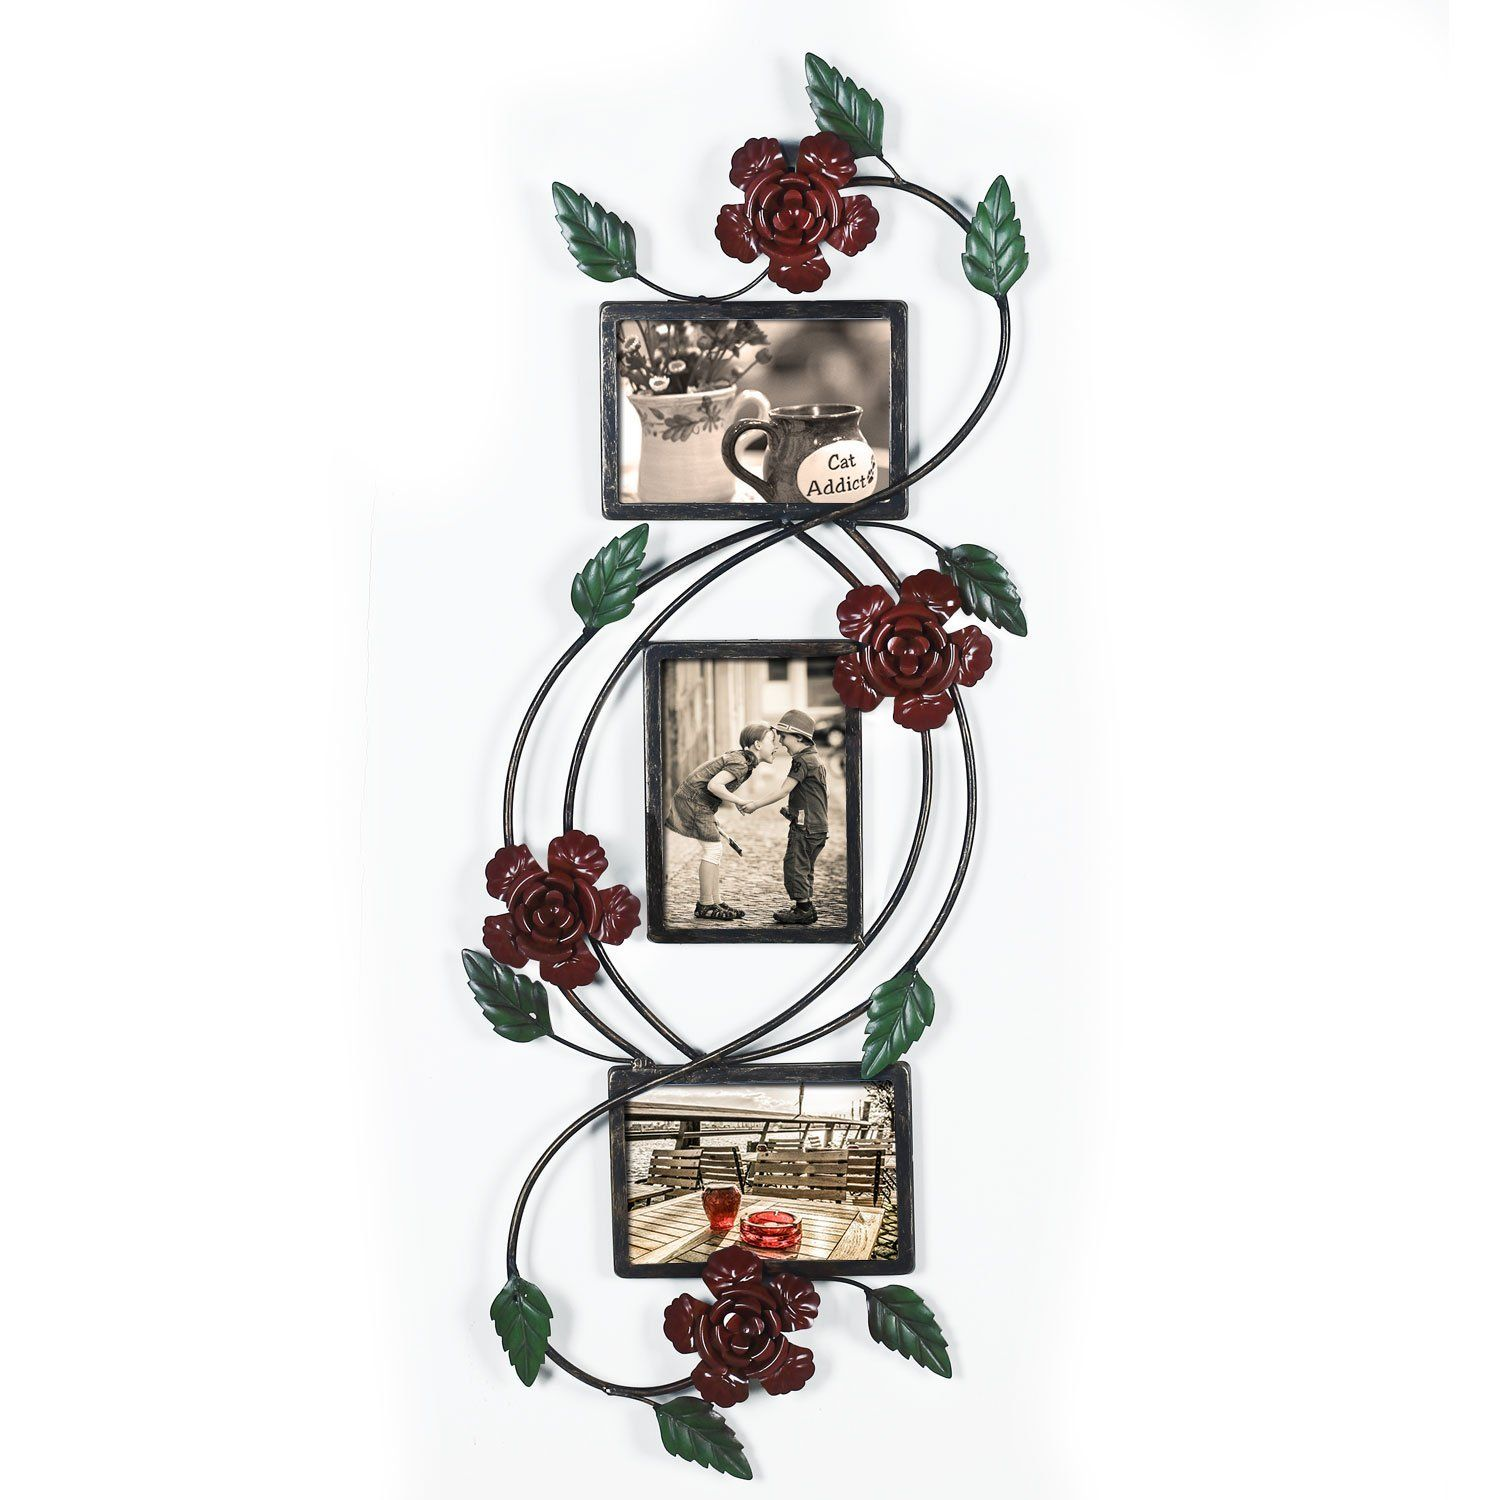 Adeco brown black decorative 3 opening collage bronze iron metal adeco black decorative 3 opening collage bronze metal wall haning rose scroll picture frame jeuxipadfo Images